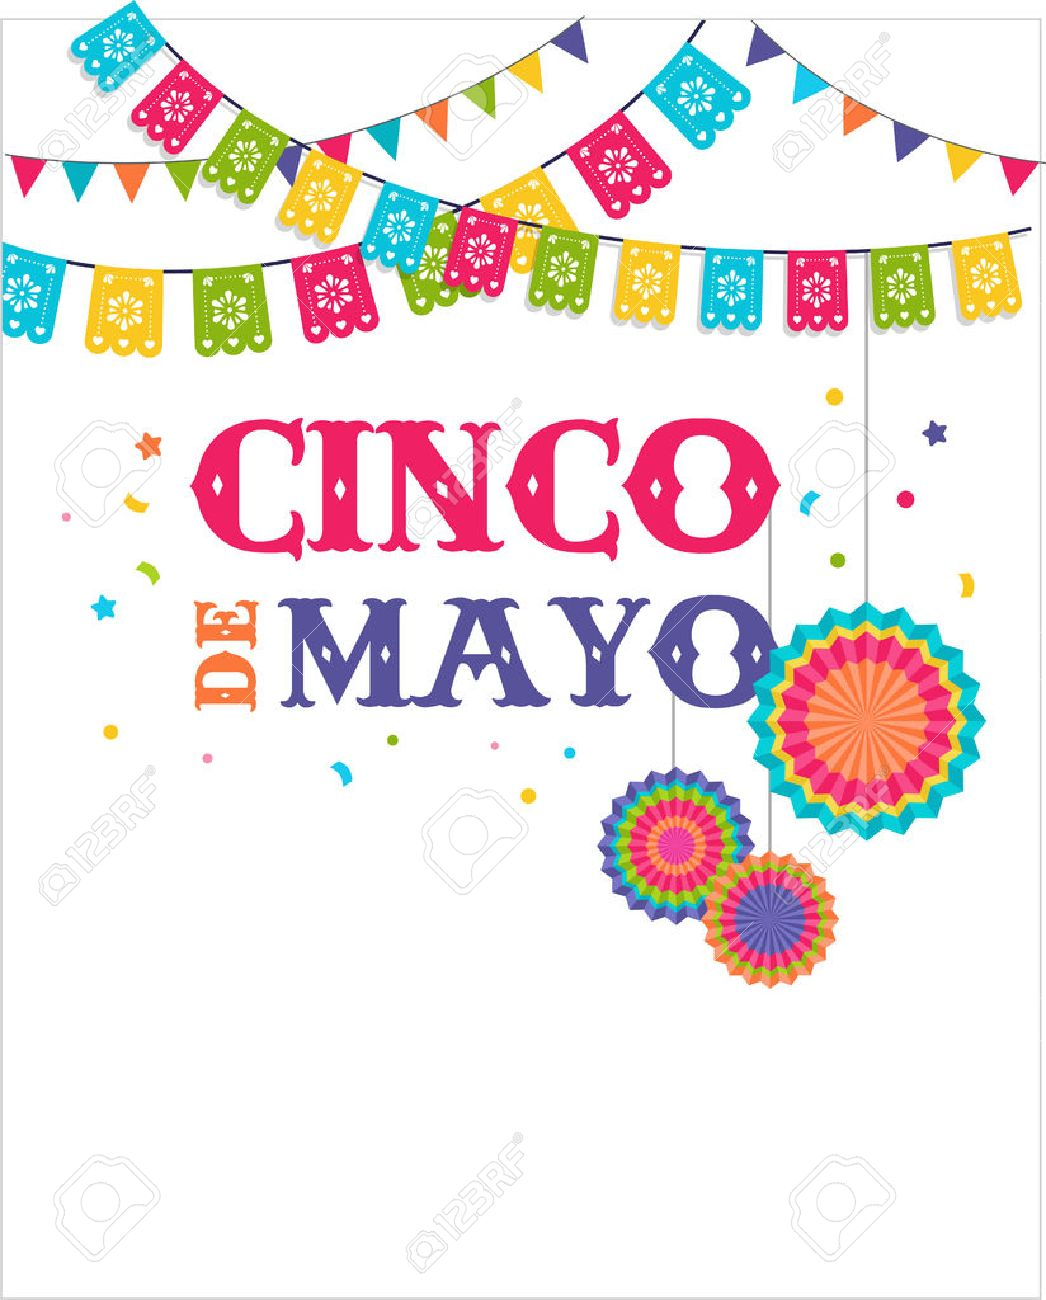 Cinco de mayo, Mexican fiesta banner and poster design with flags,...